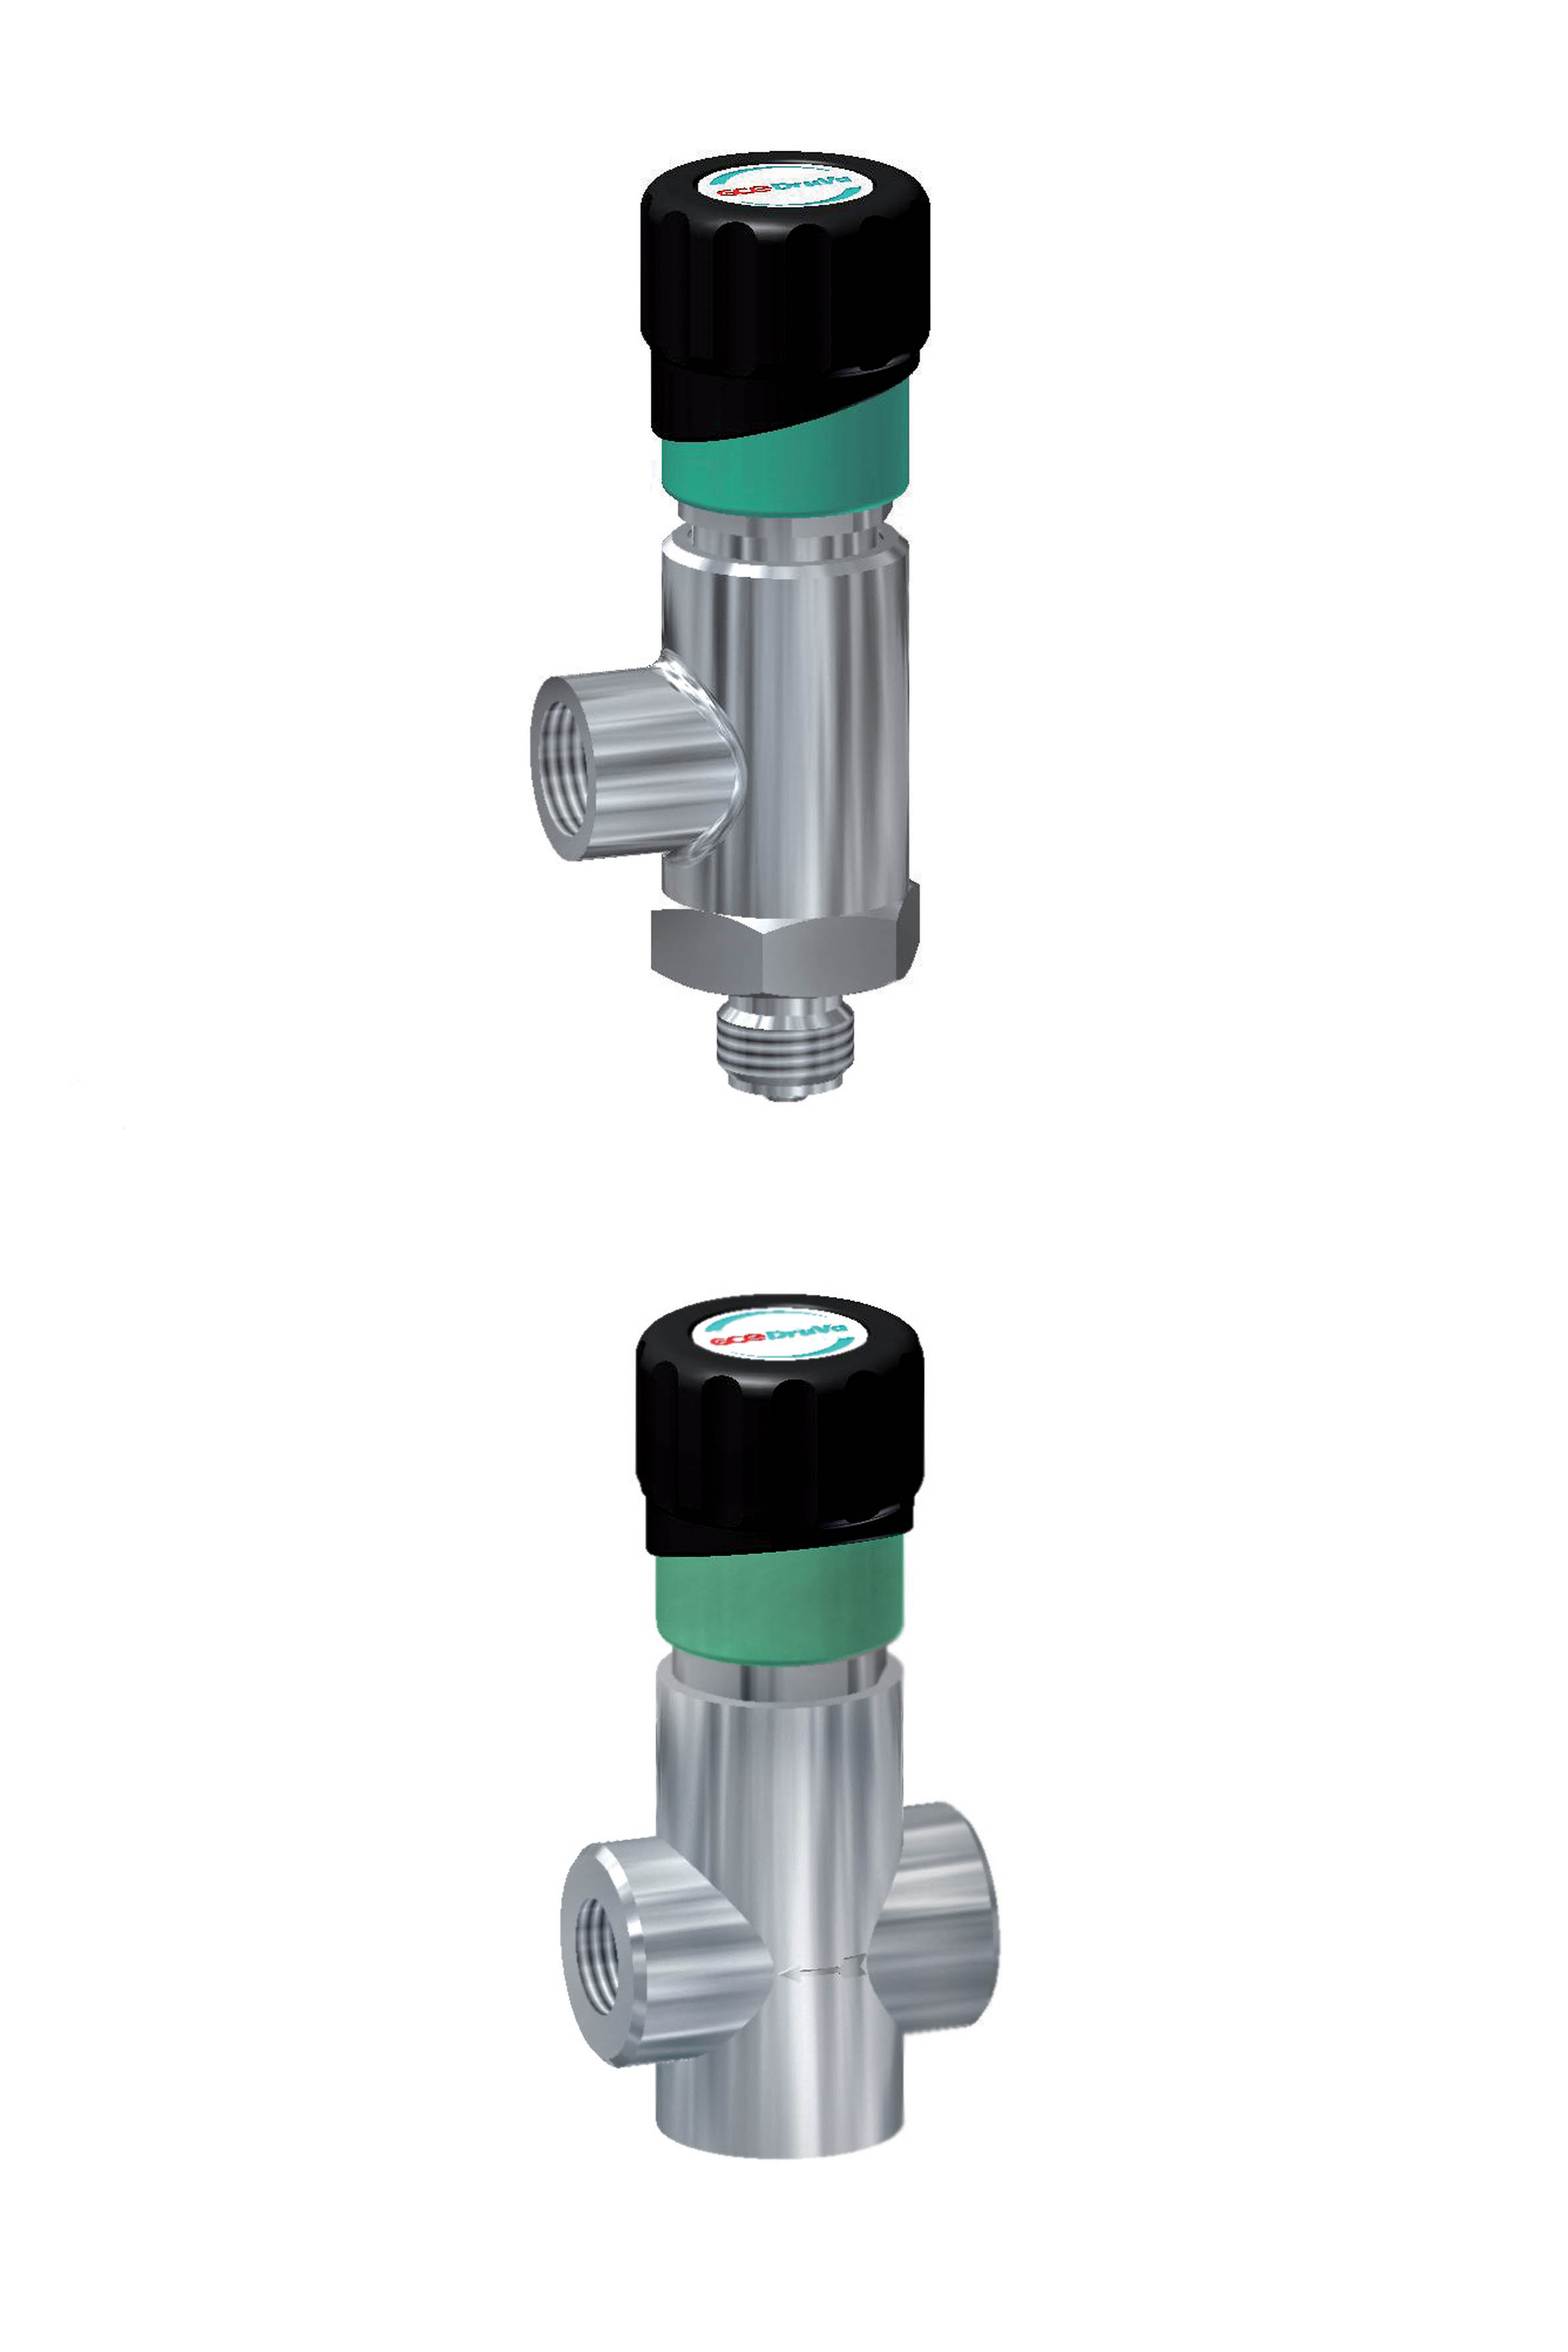 Diaphragm shut off and regulating valve page image